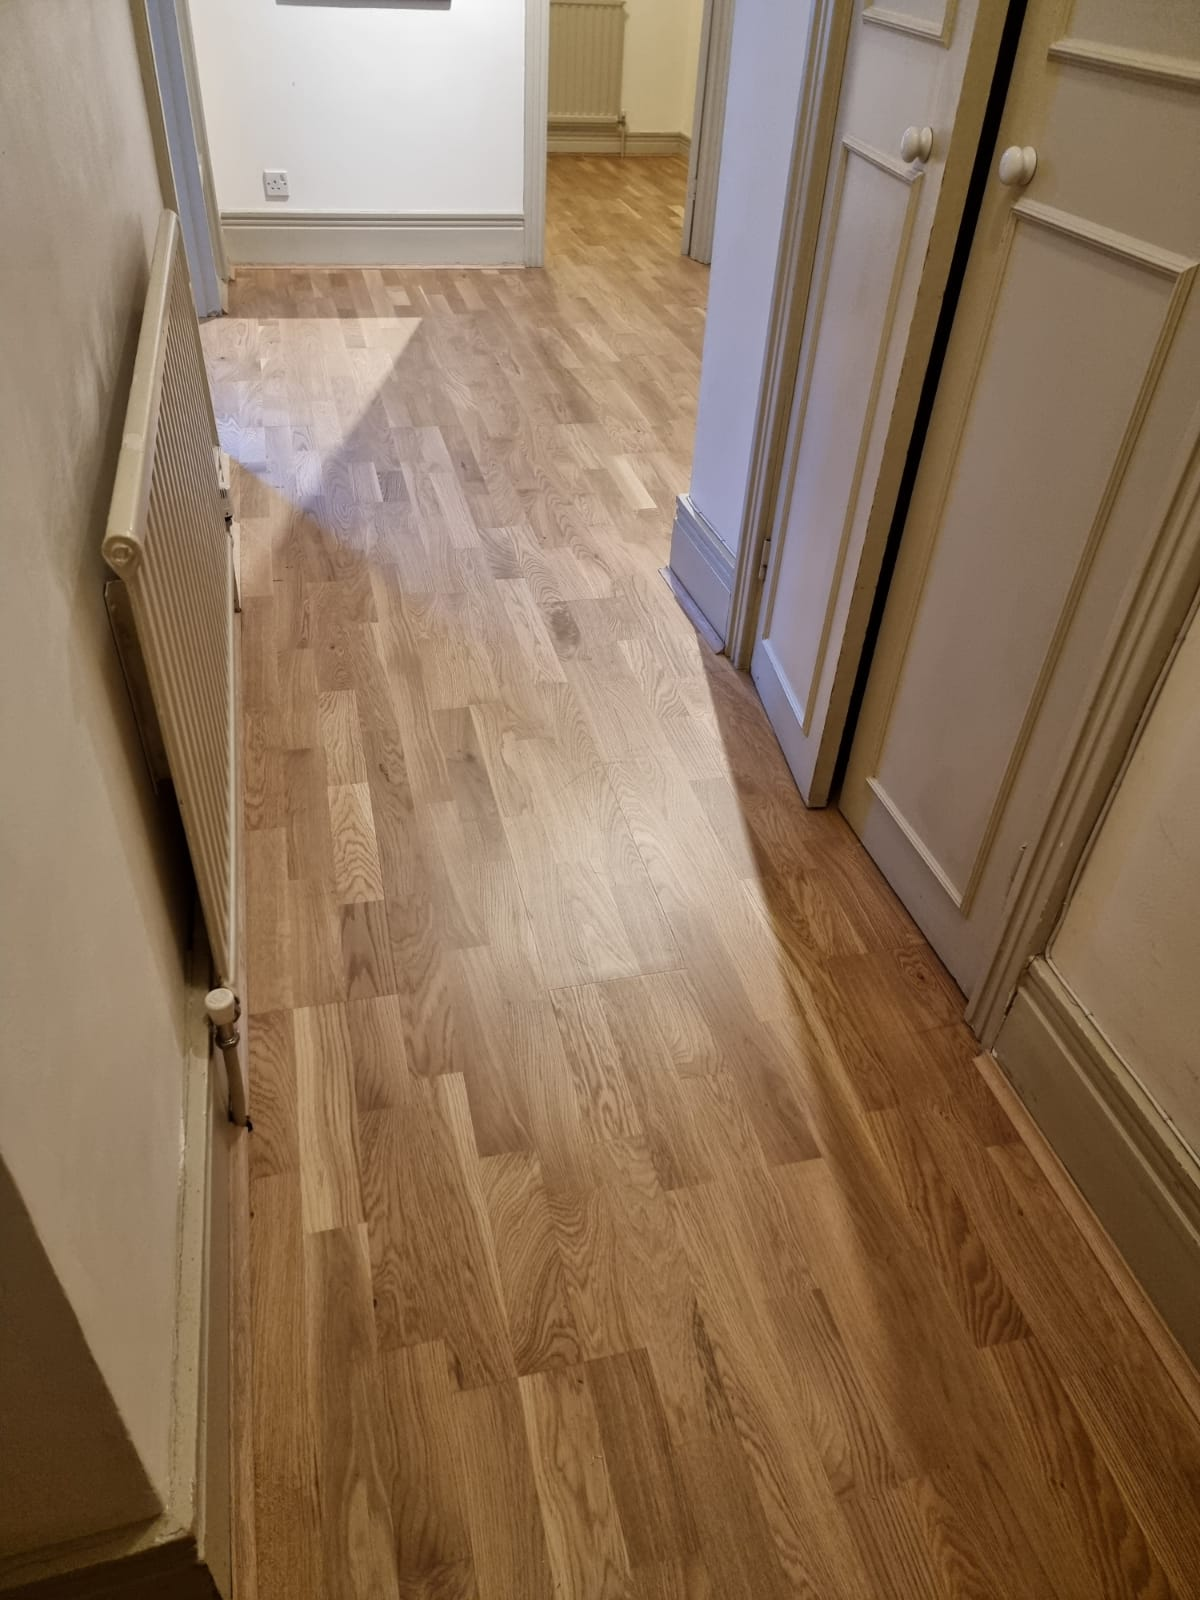 Holt Oak Wood Flooring Yardley in Lambeth 4